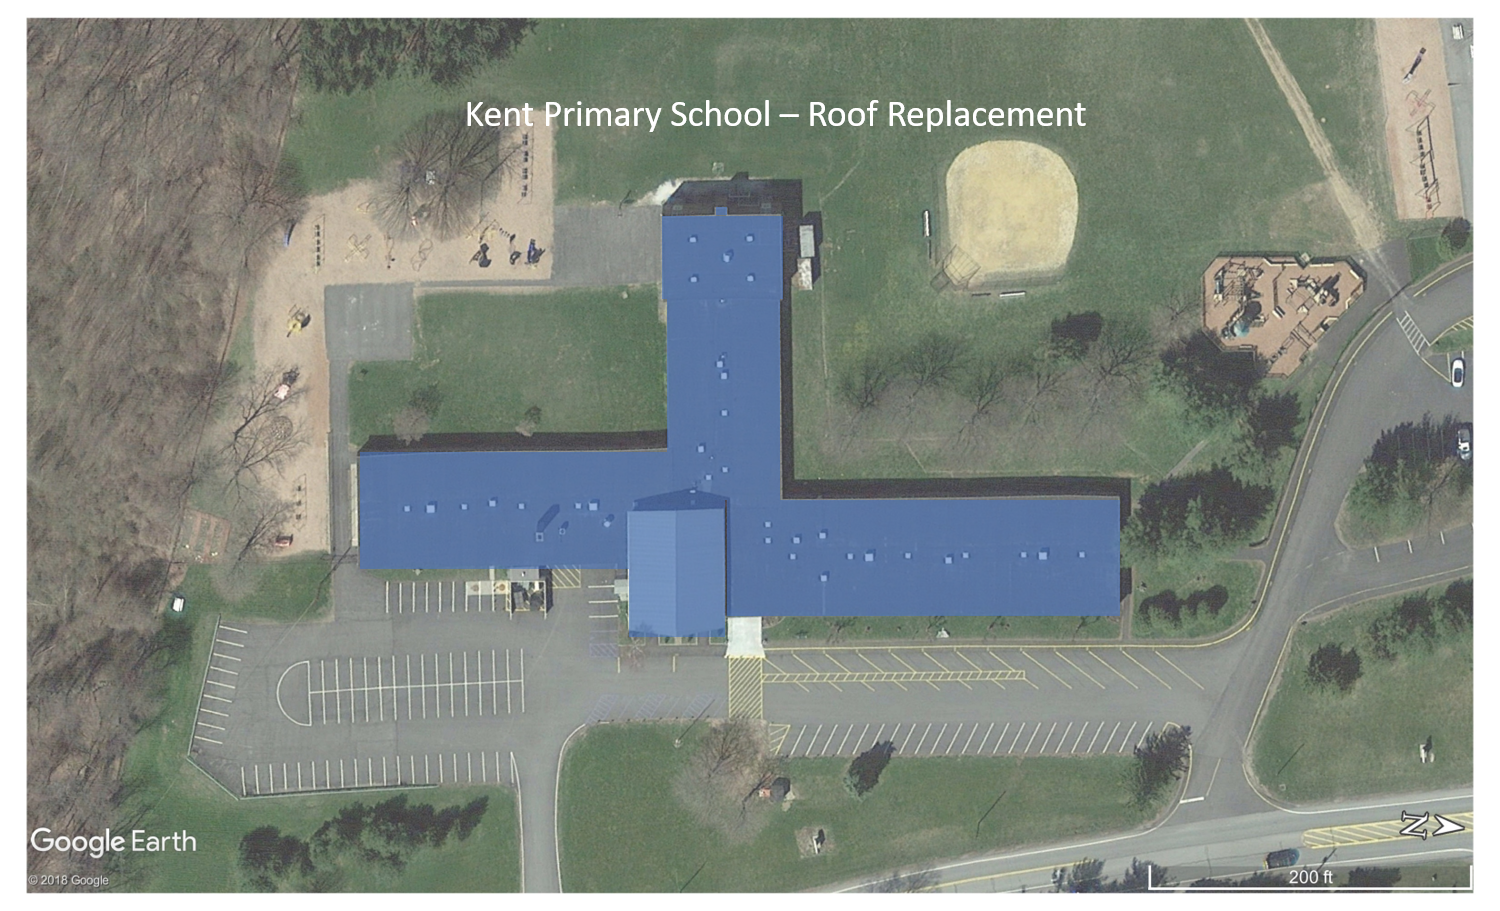 Kent Primary Elementary School (replacement sections are shown in blue)